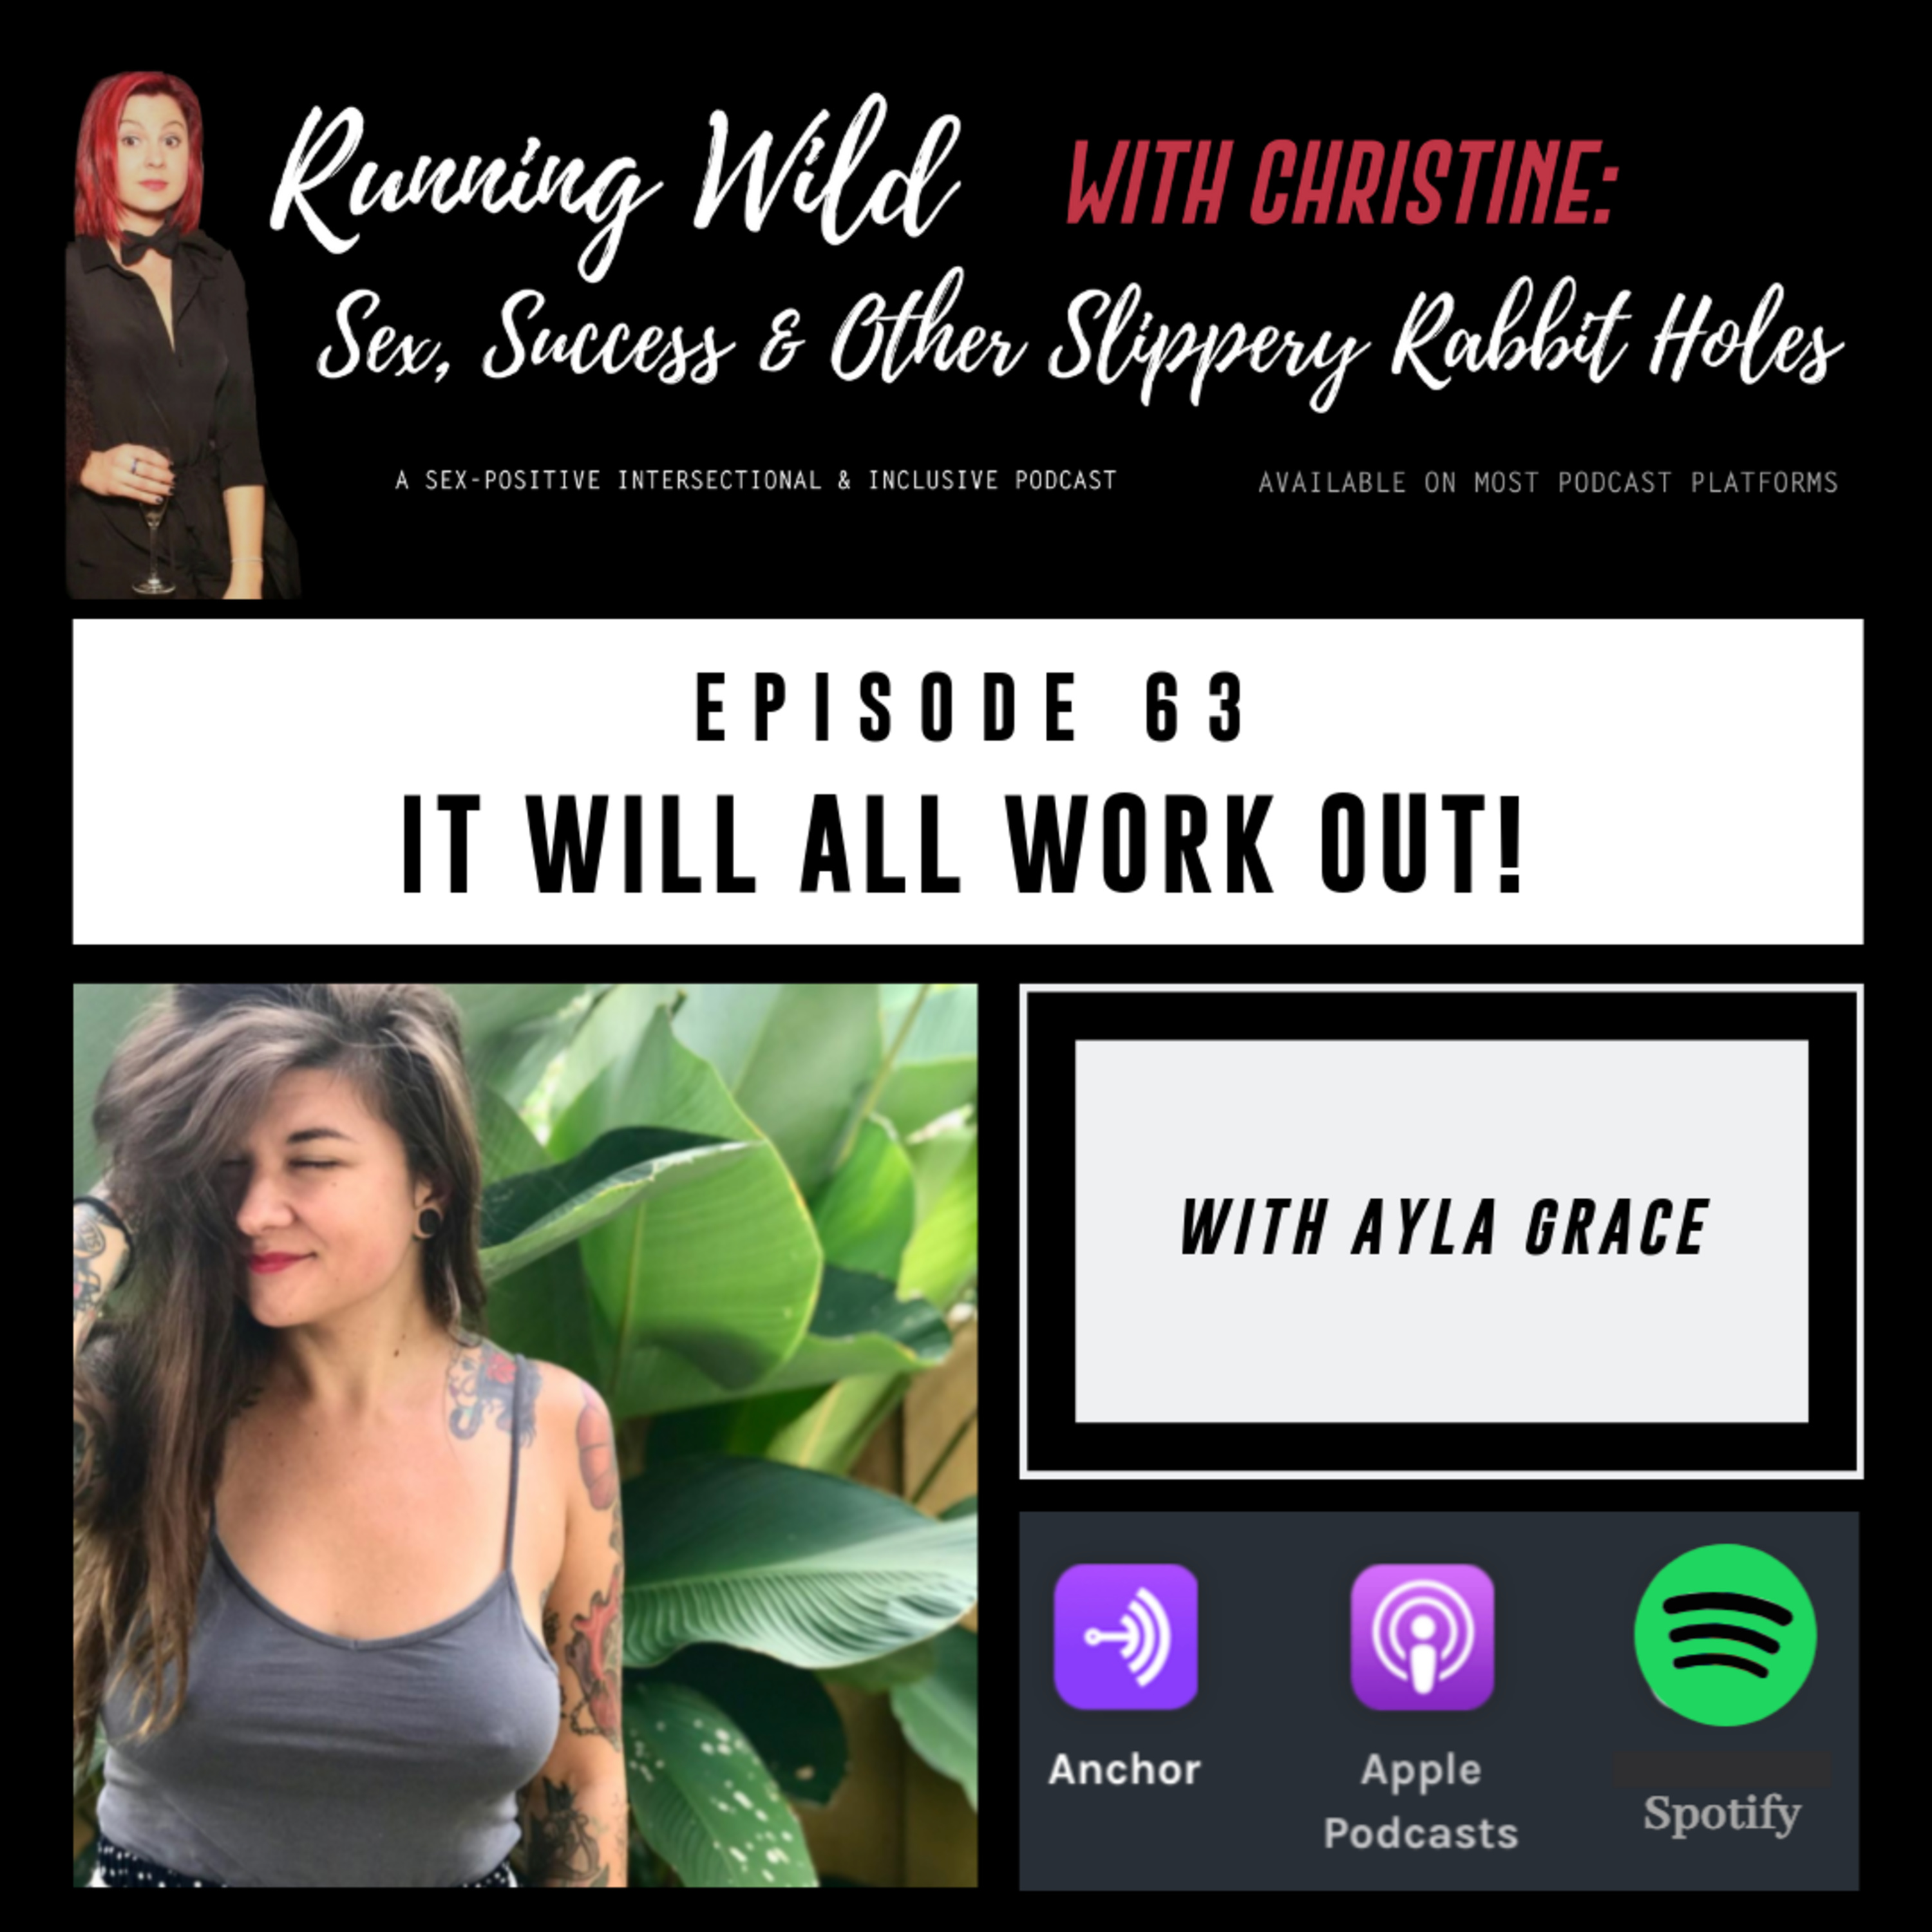 Ep 63: It Will All Work Out! with Ayla Grace